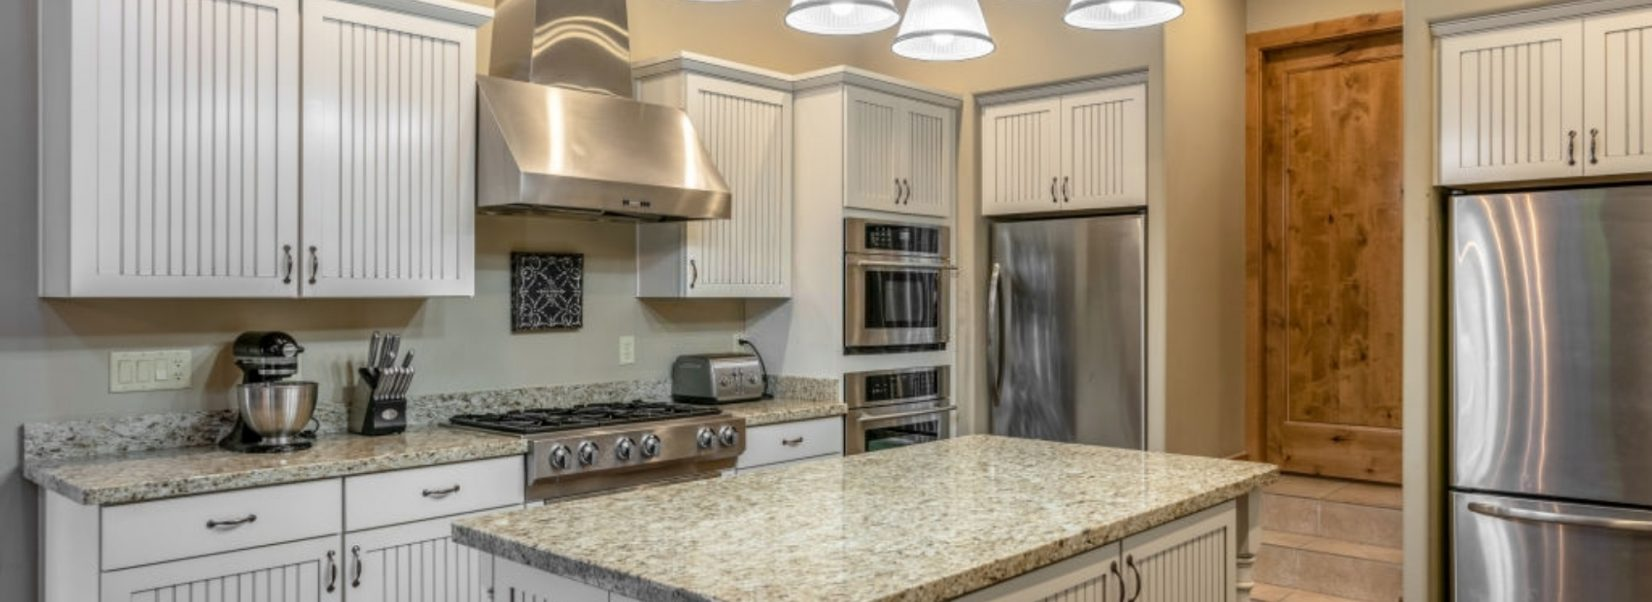 - The Pros And Cons Of The Four-Inch Backsplash